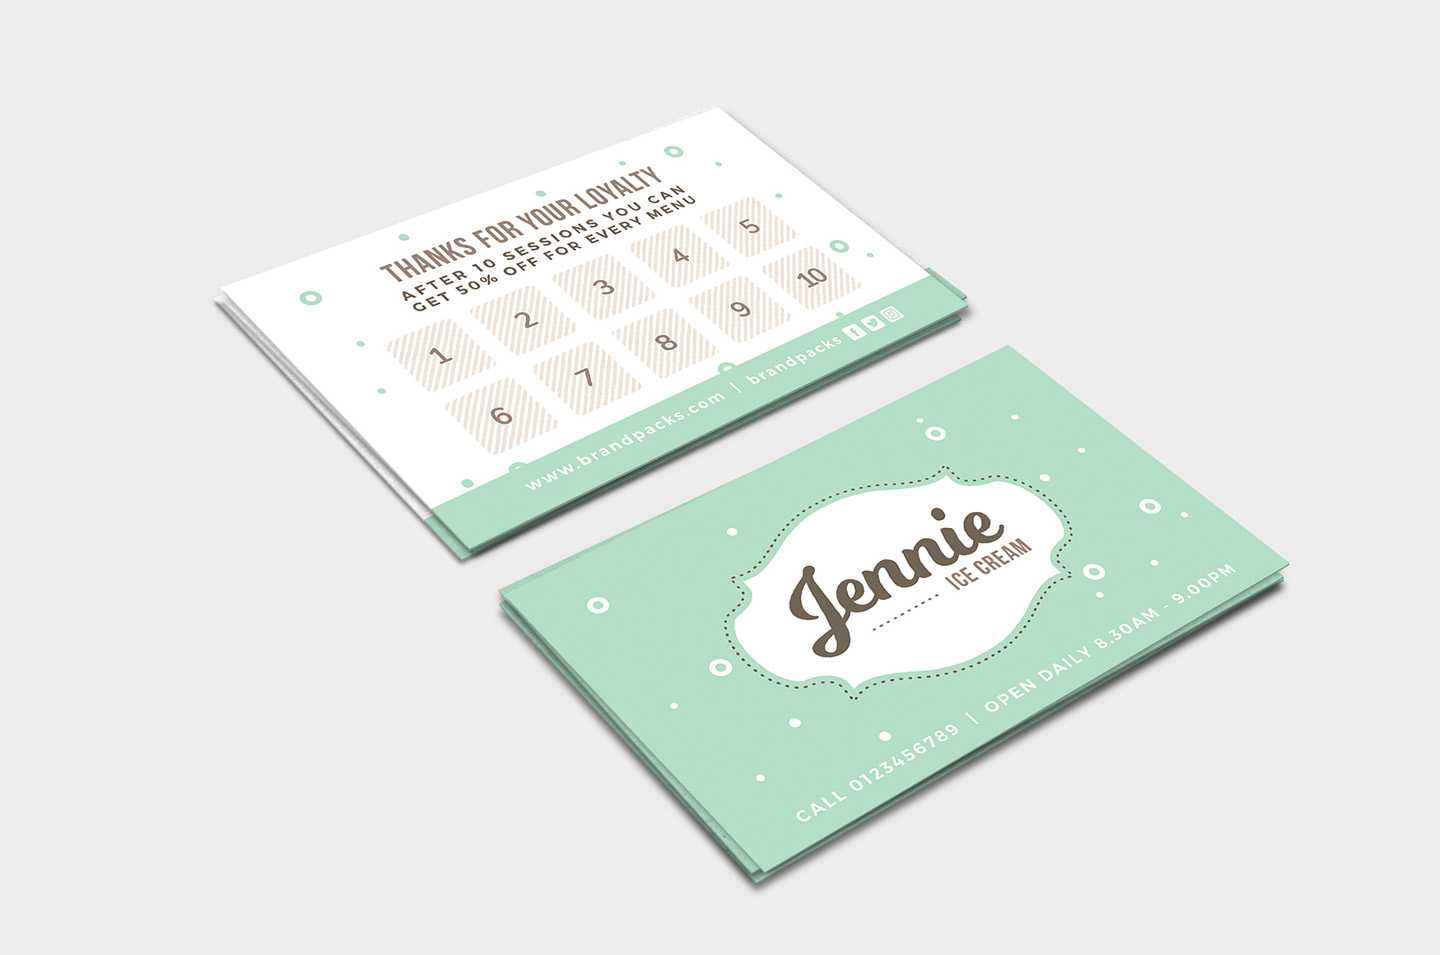 Free Loyalty Card Templates - Psd, Ai & Vector - Brandpacks Throughout Loyalty Card Design Template